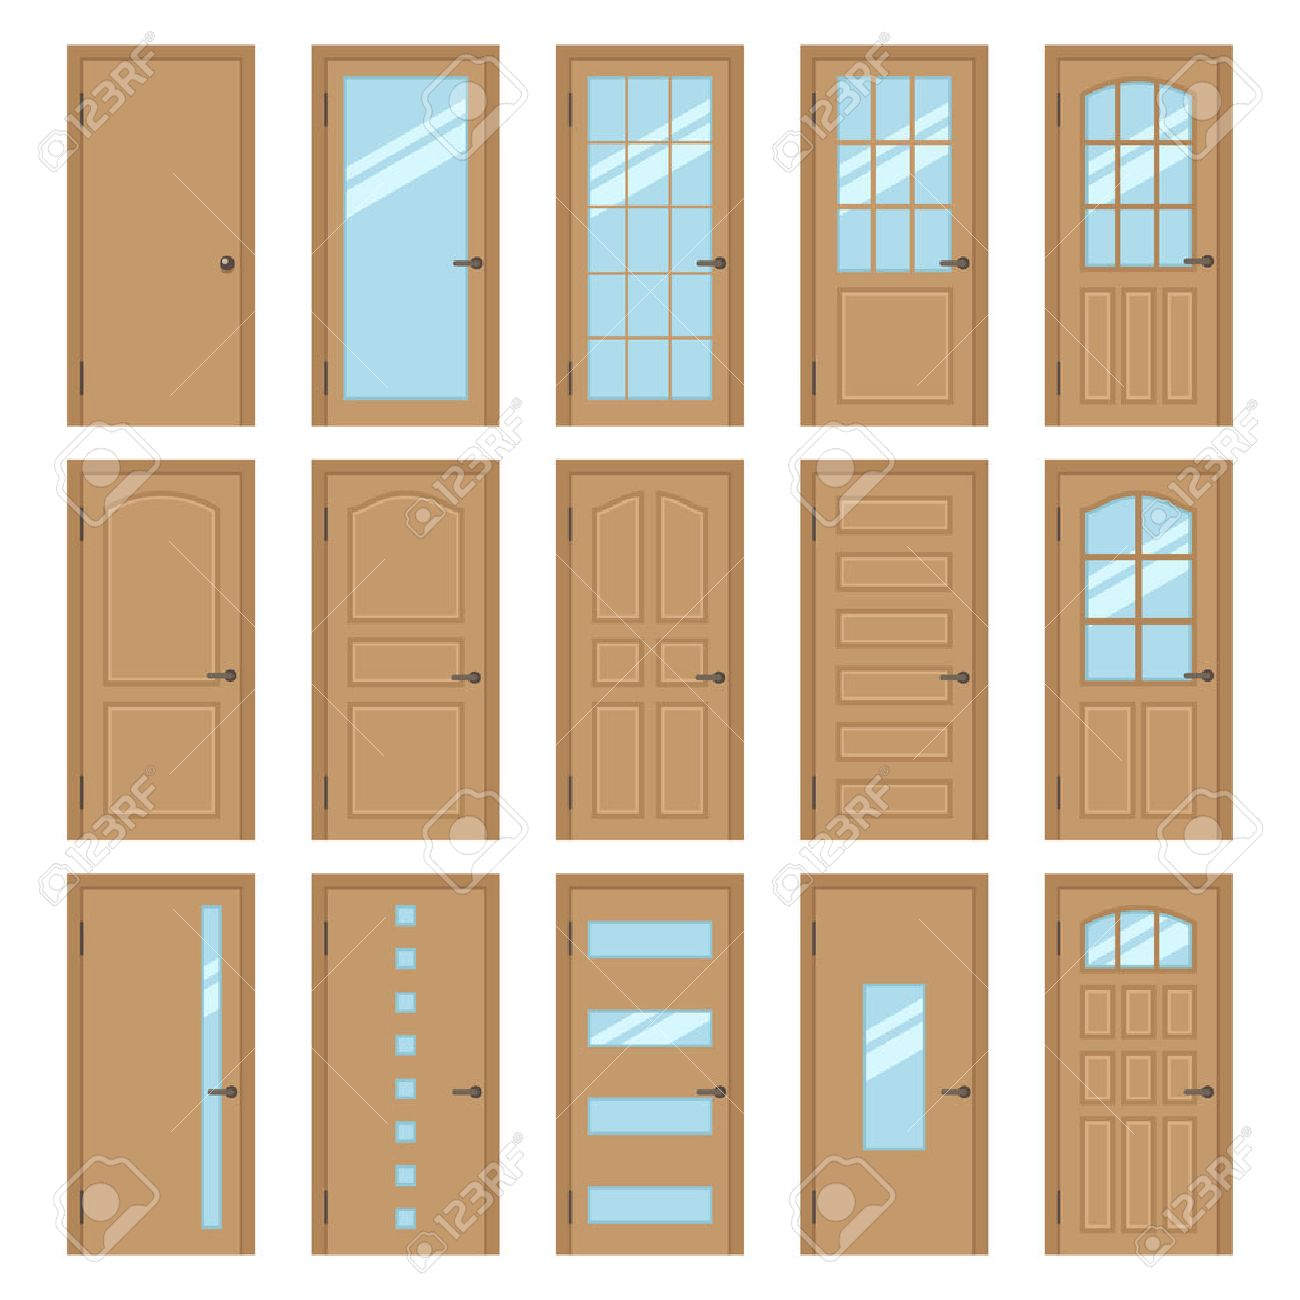 Decorating door types pics : Vector Collection Of Various Types Of Wooden Interior Doors ...